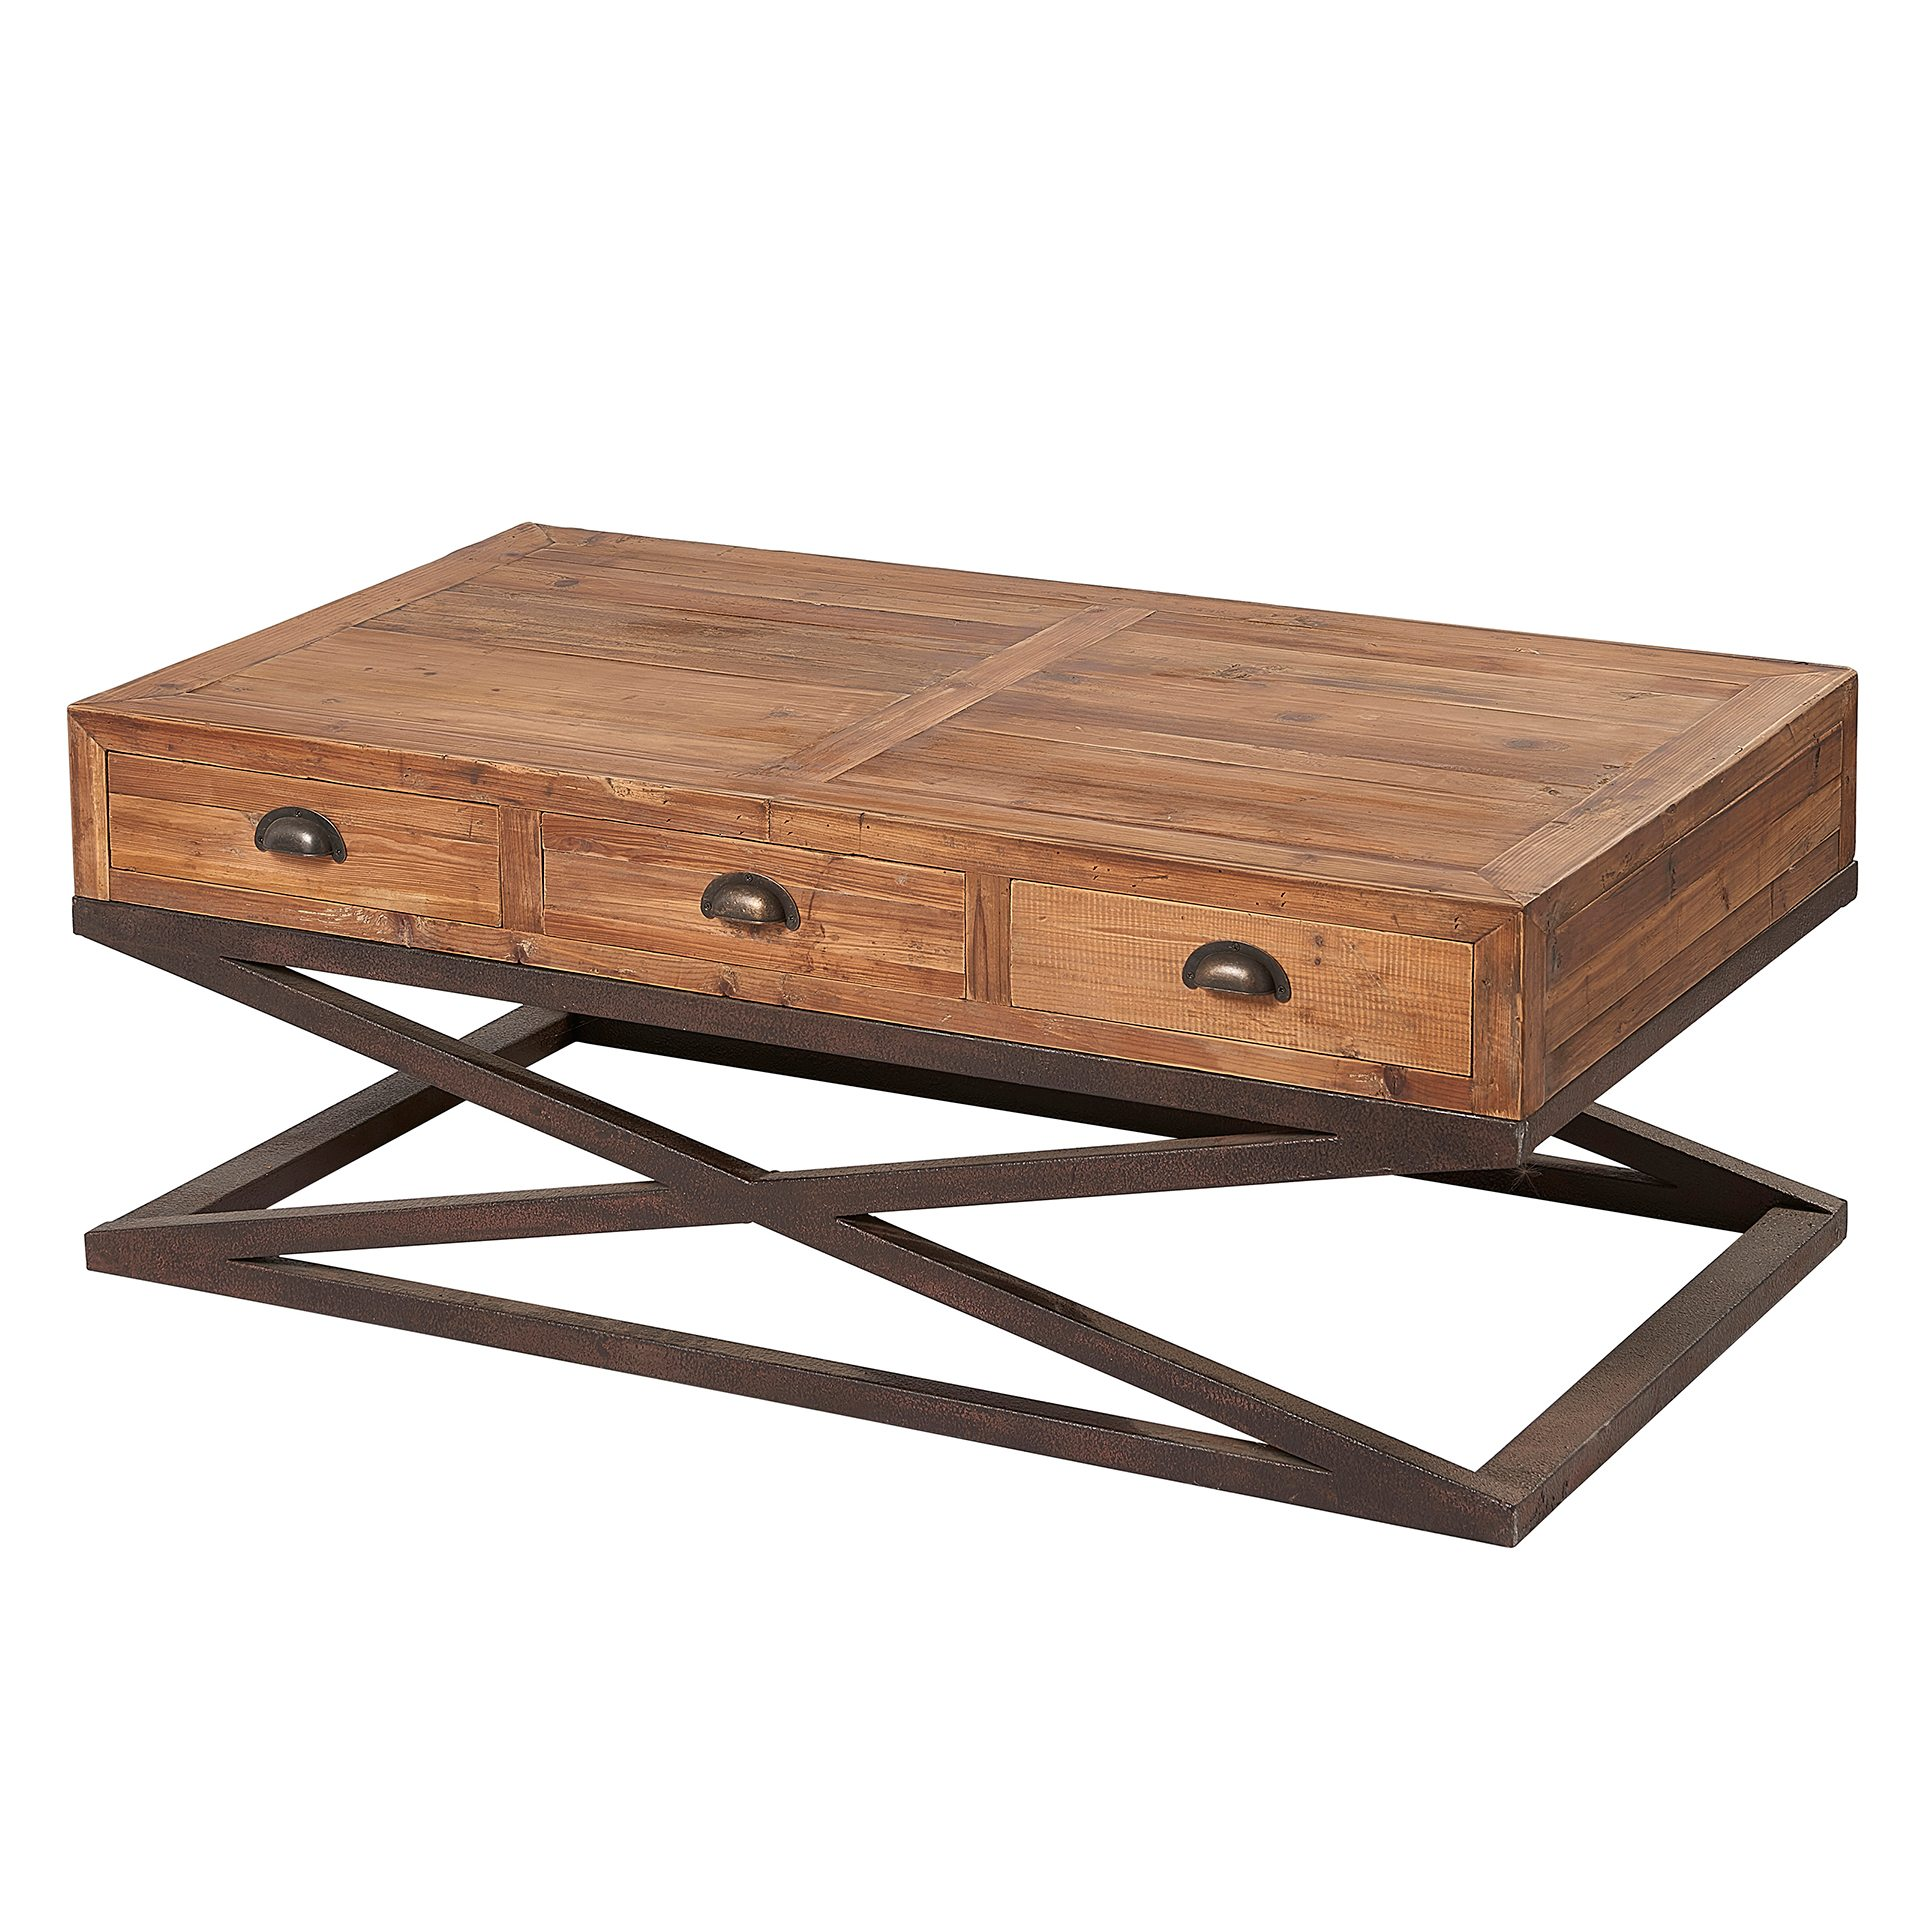 Indore Coffee Table With 6 Drawers: Liberty Bay 6 Drawer Coffee Table